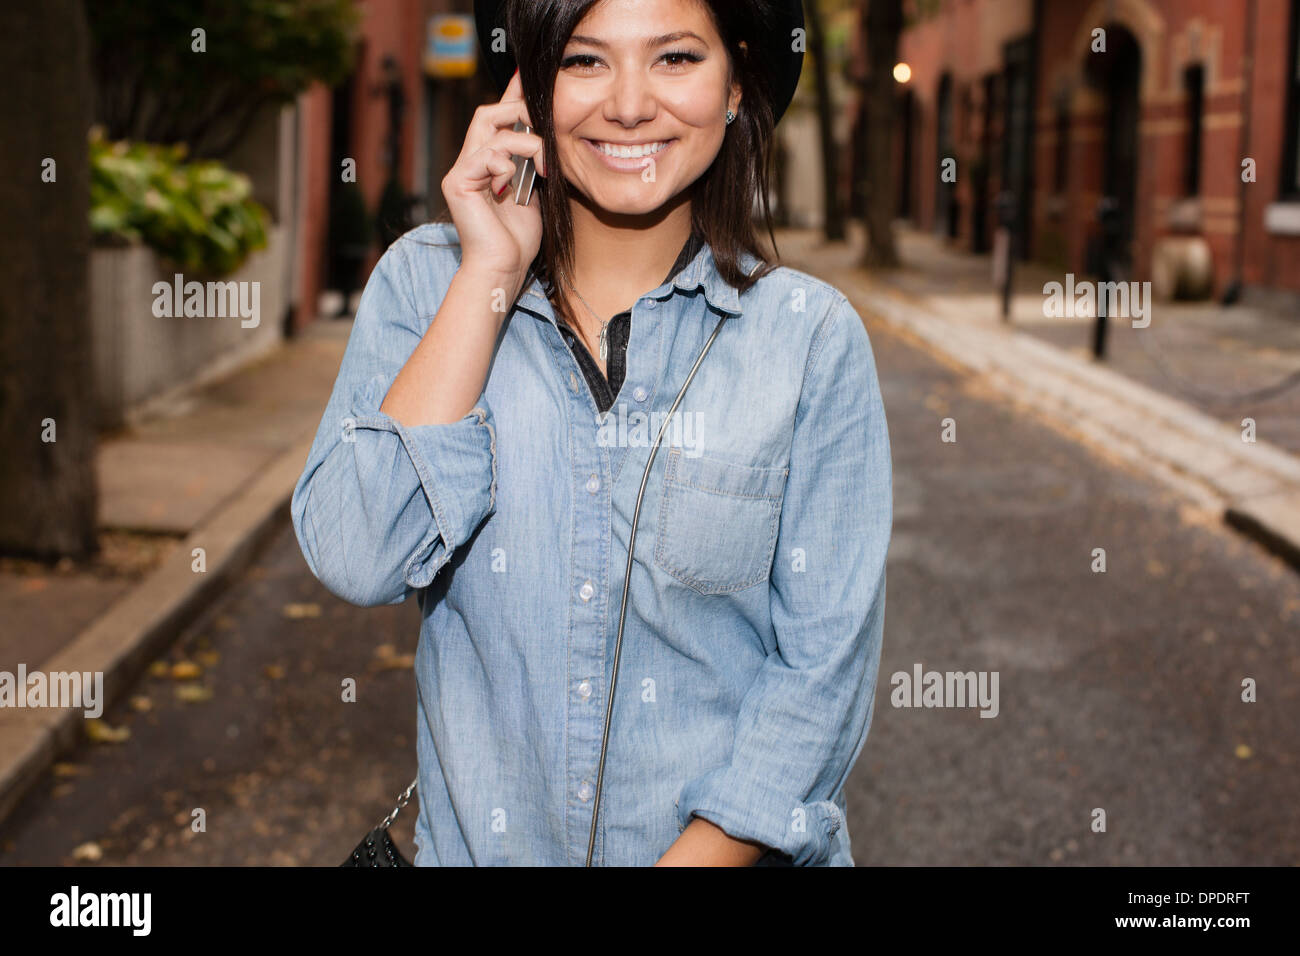 Woman talking on cellular phone - Stock Image